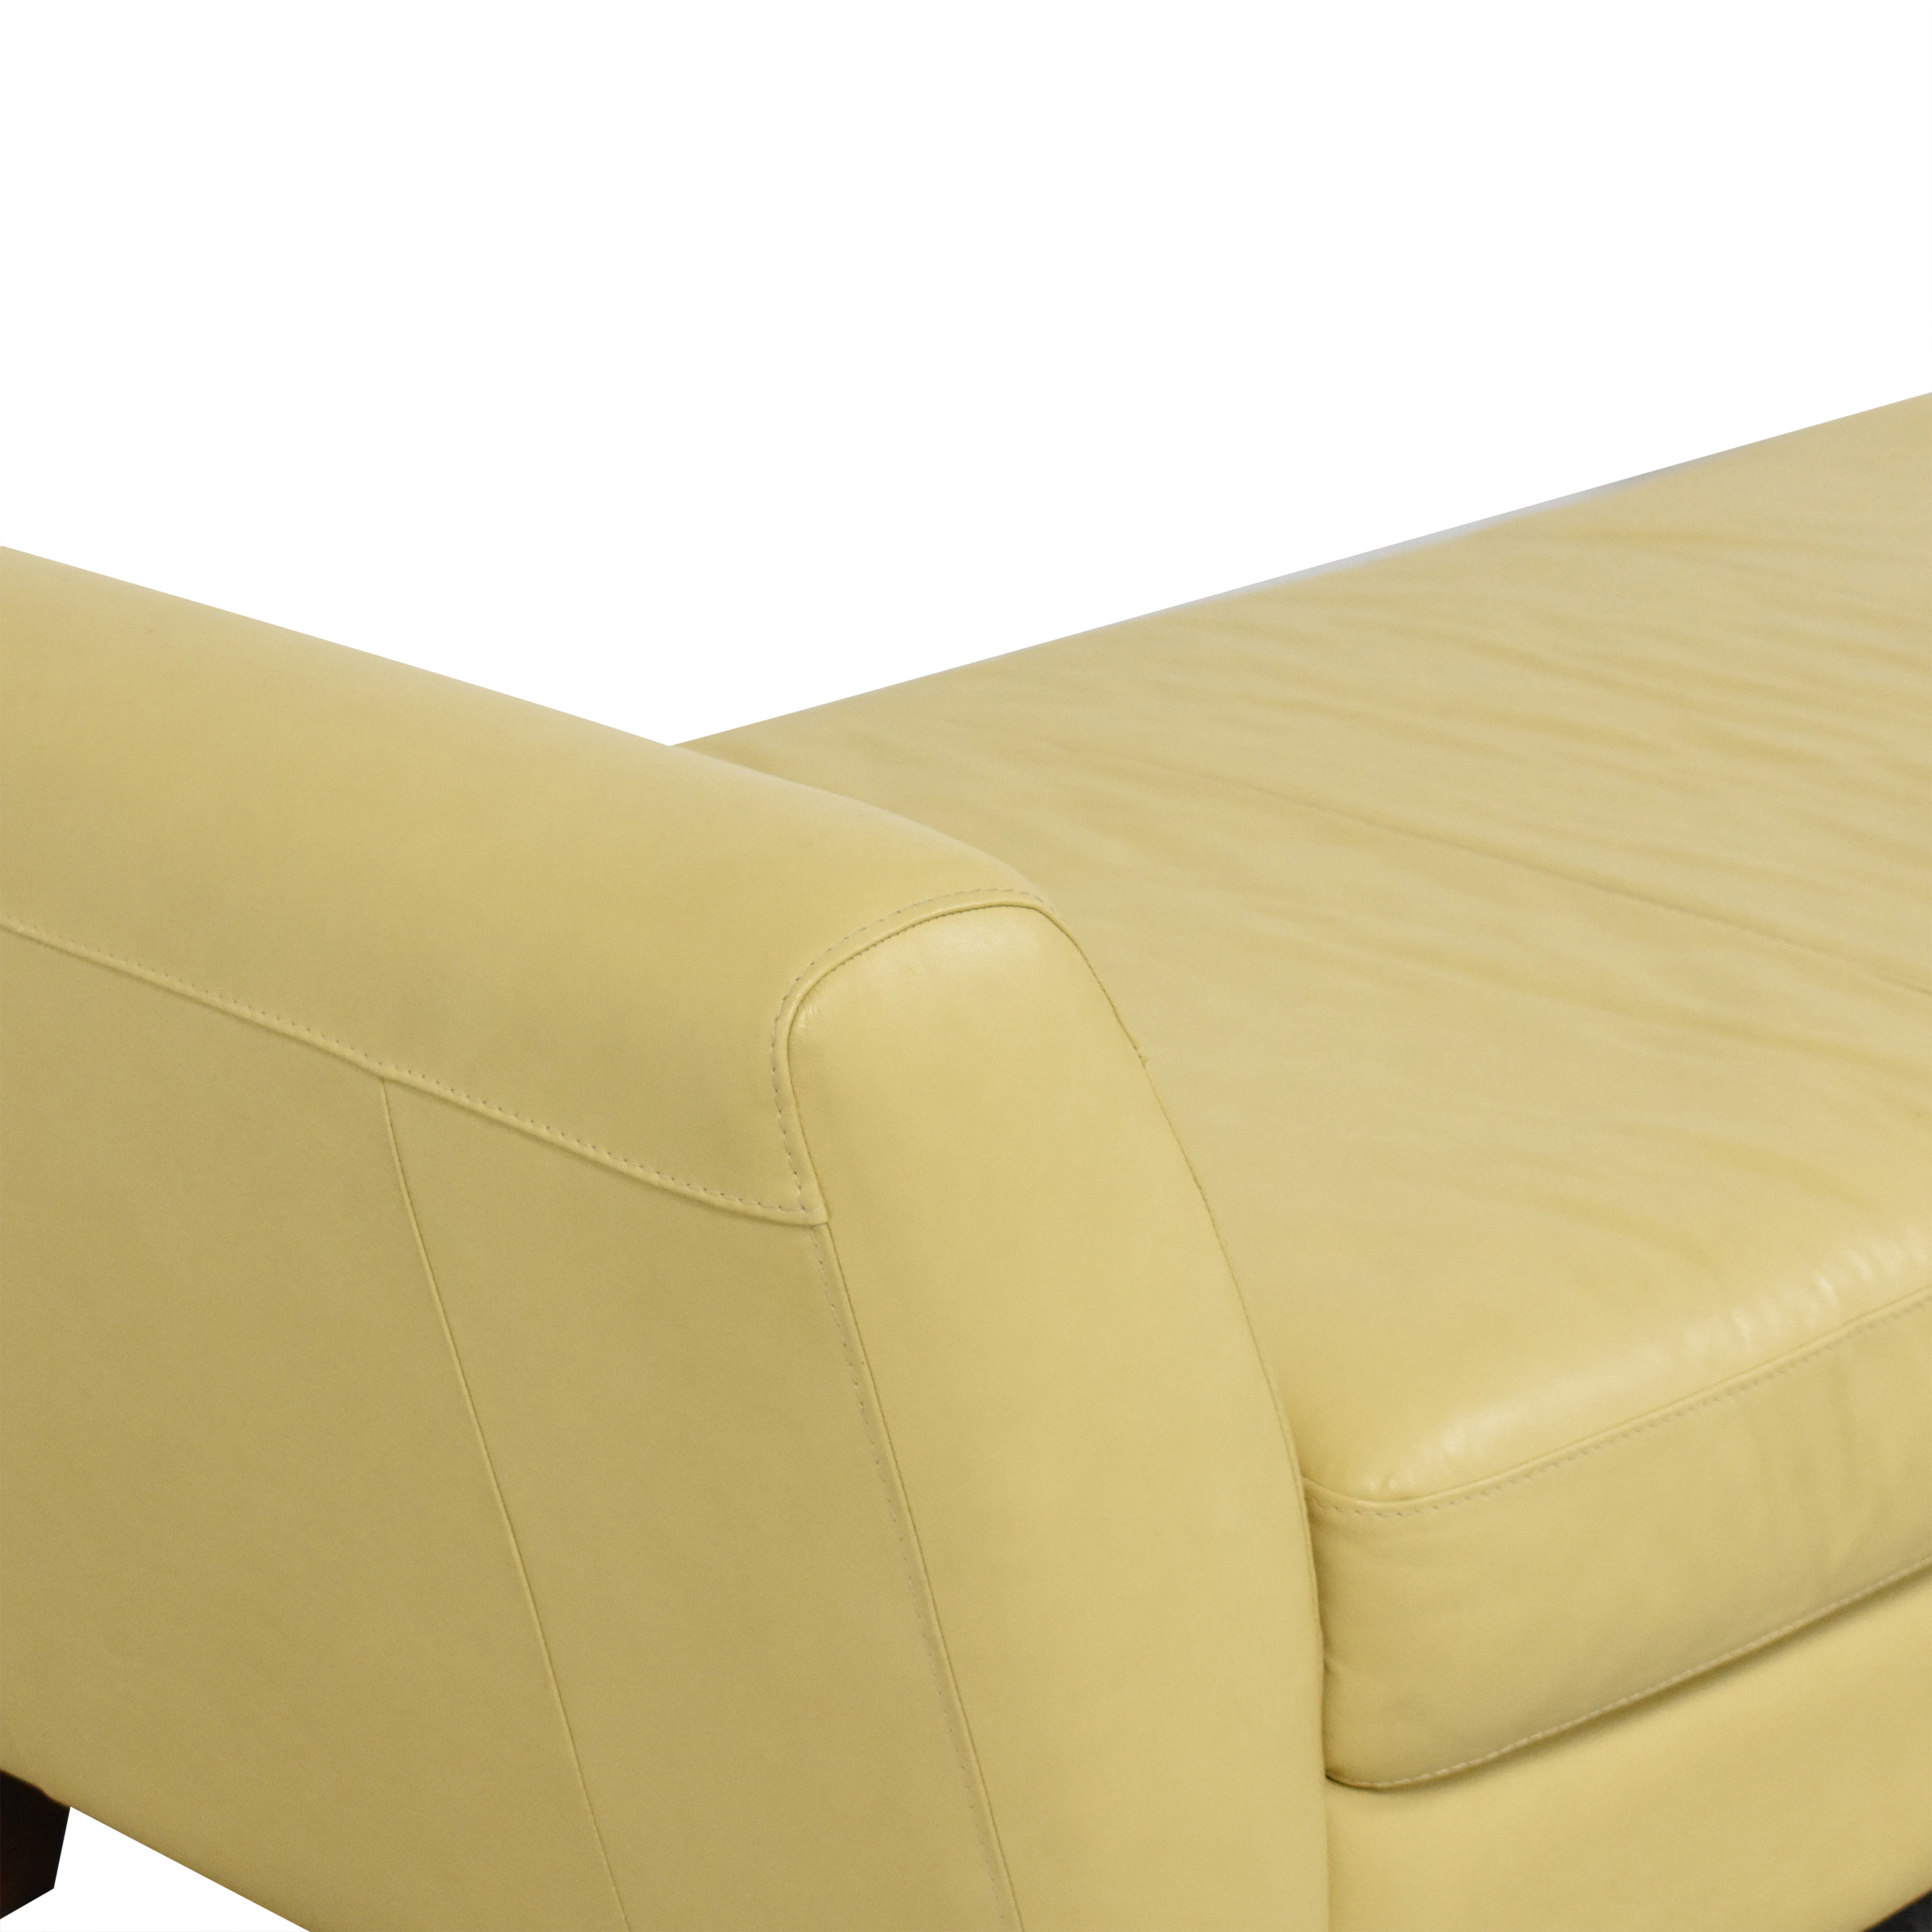 Italsofa Italsofa Daybed with Pillows Chaises